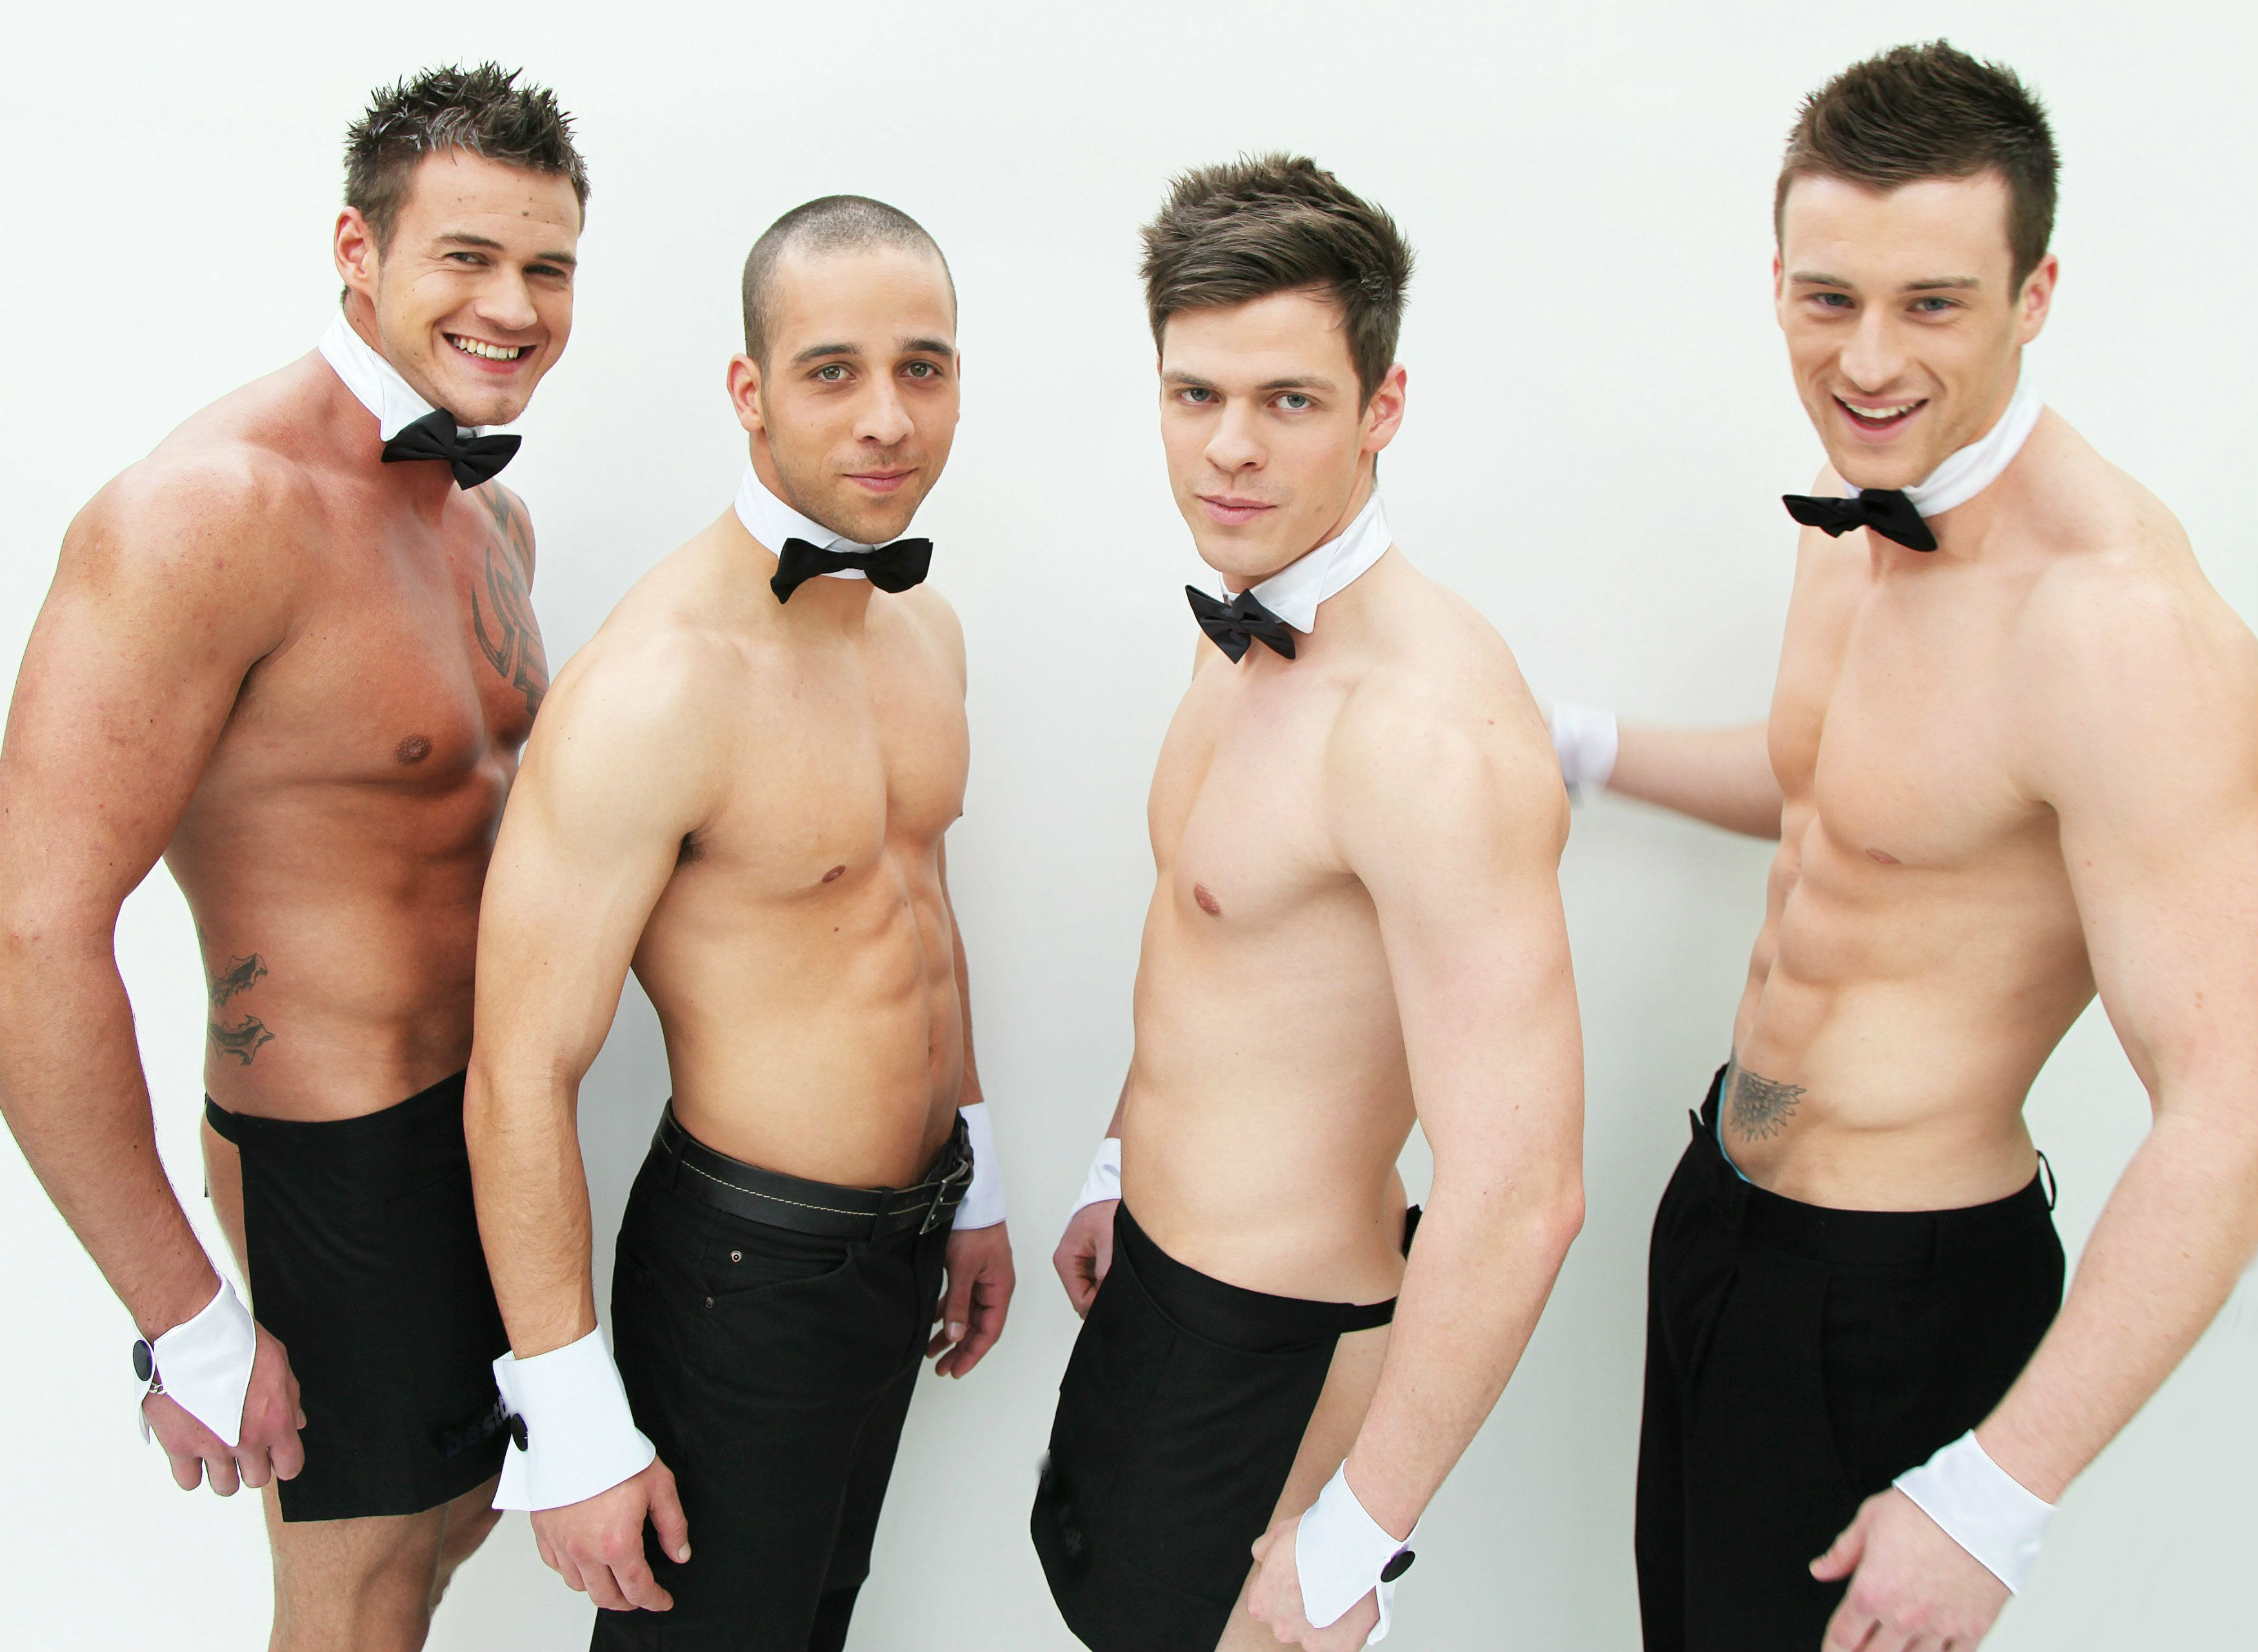 Hire A Butler In The Buff Hen Party